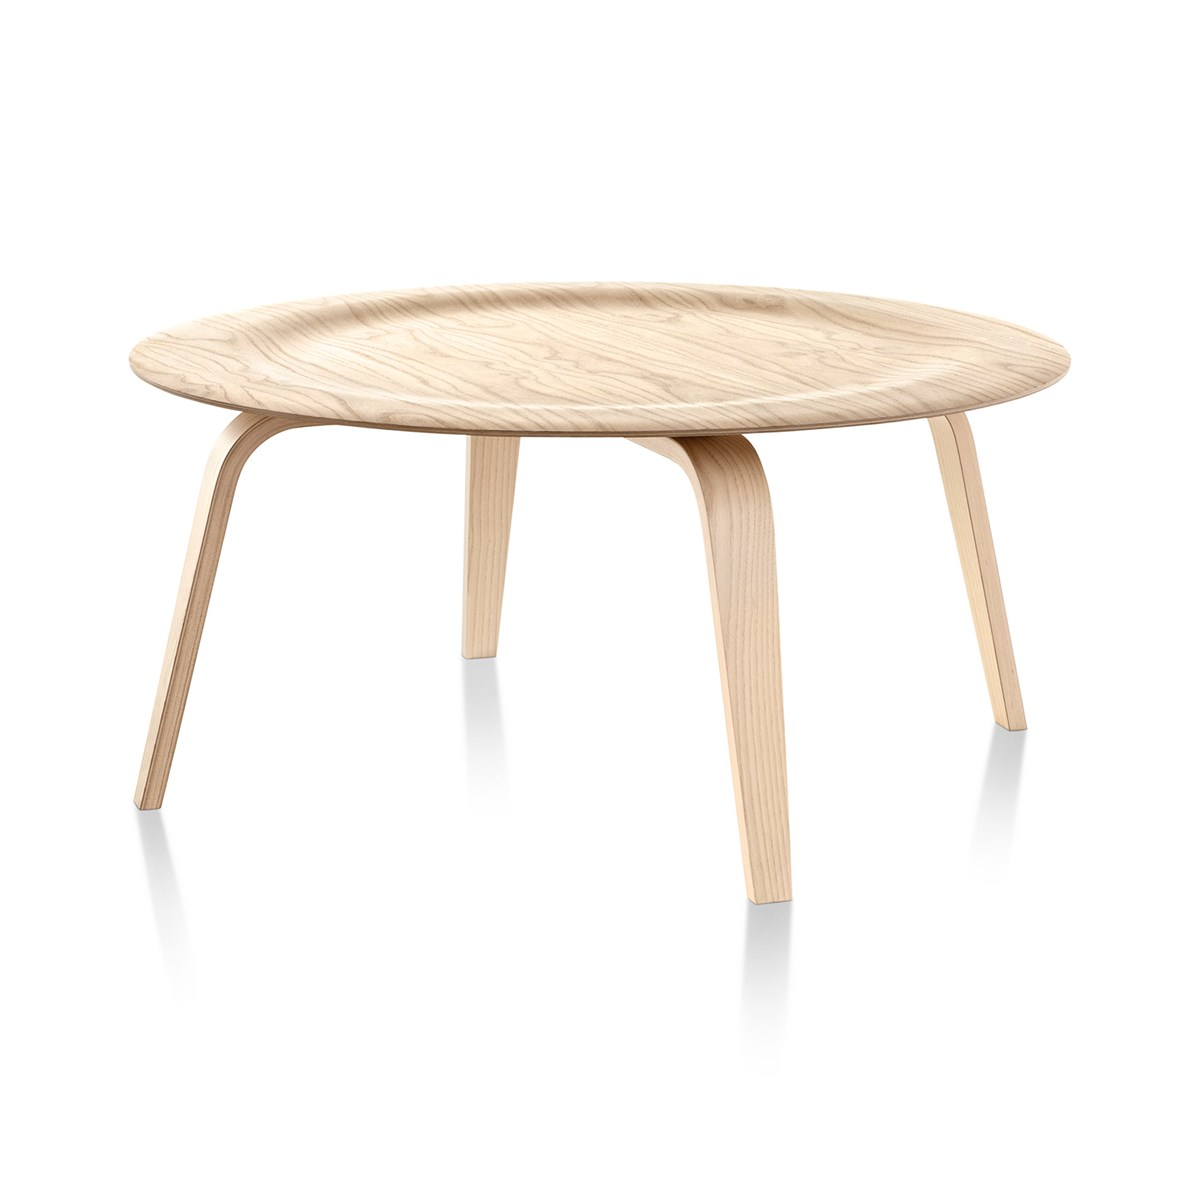 Herman-Miller-Charles-&-Ray-Eames-Eames®-Molded-Plywood-Coffee-Table-Matisse-1